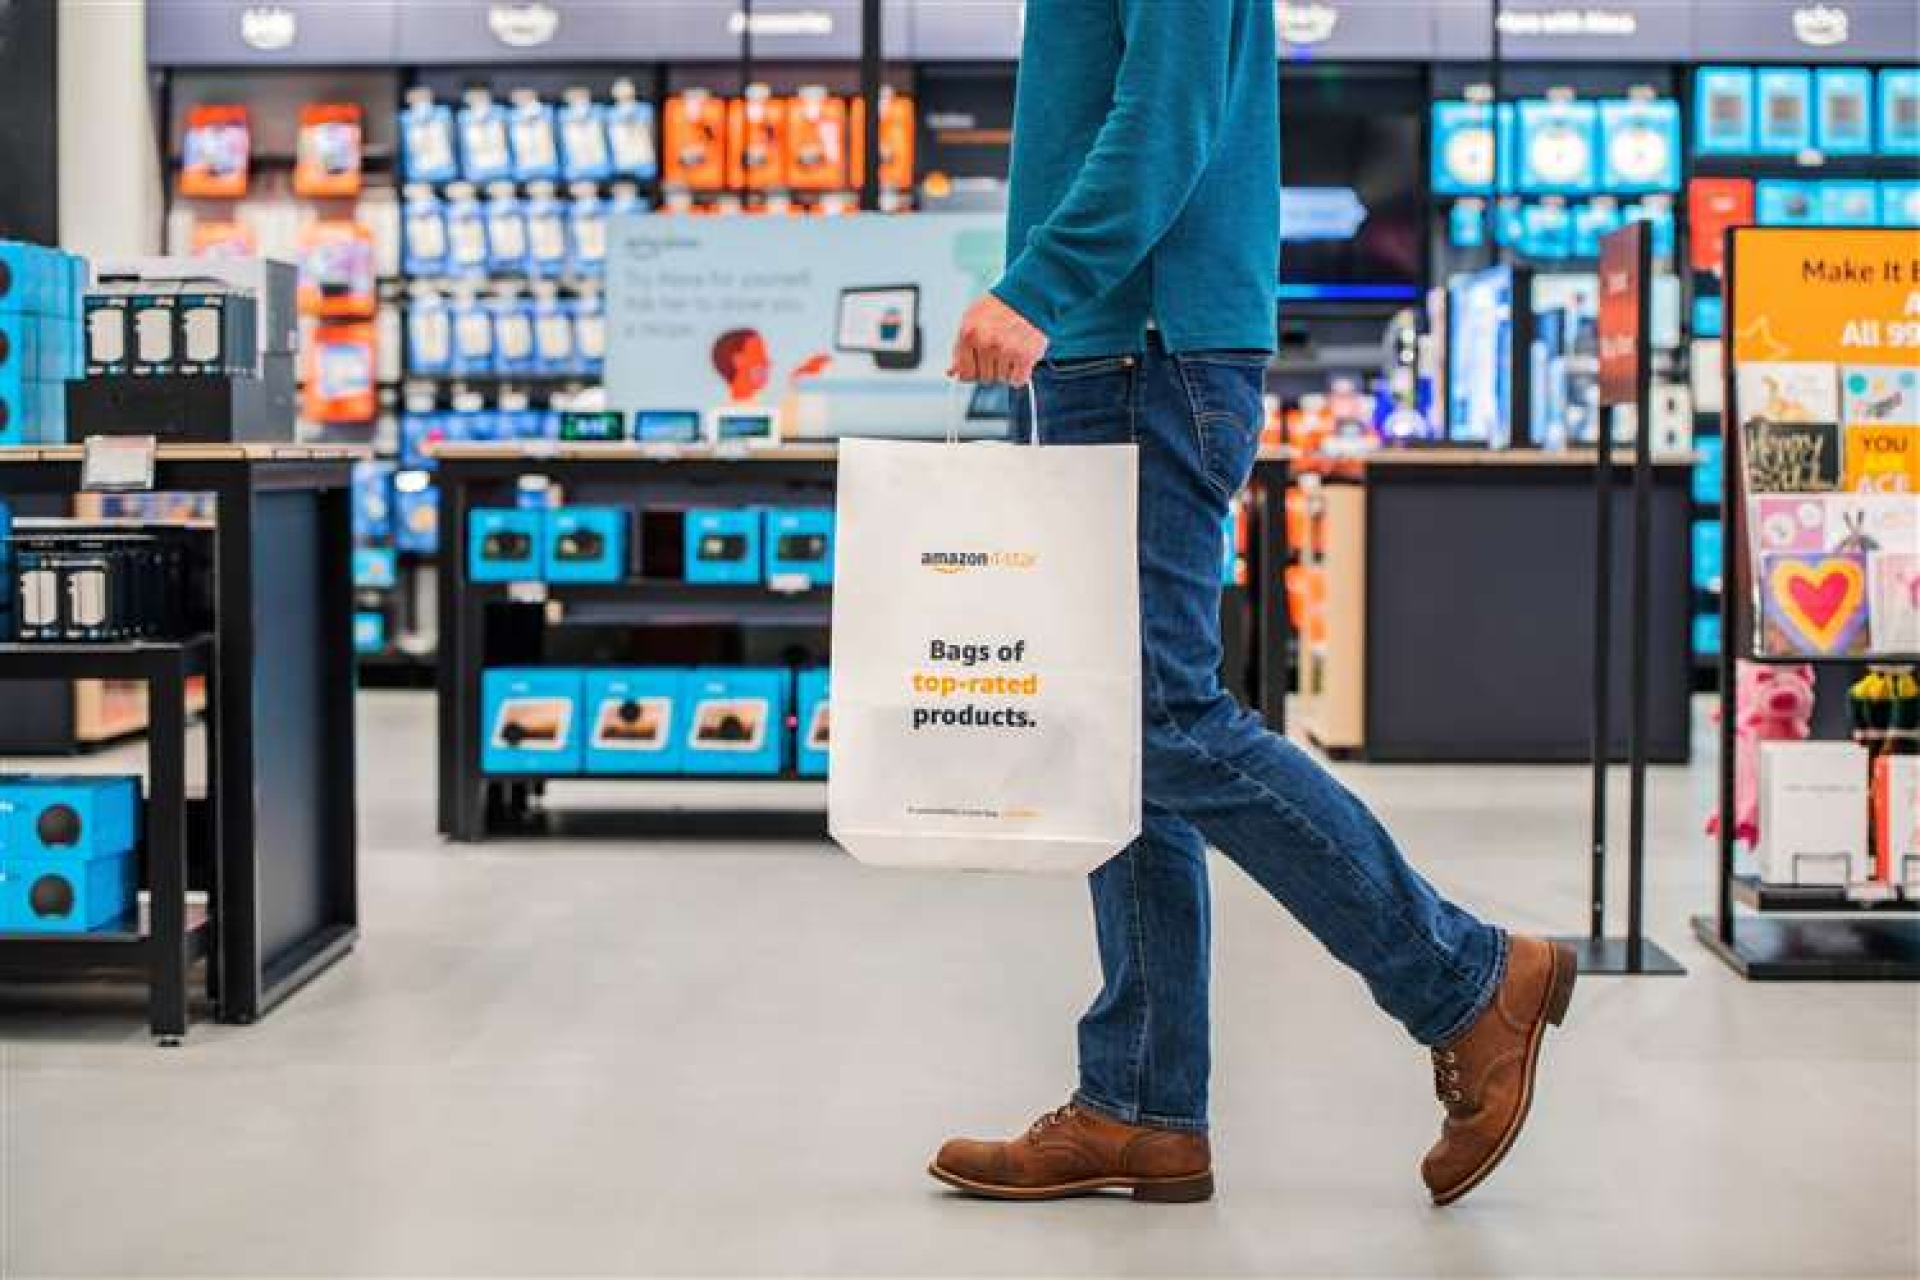 Amazon opens its first non-food store in the UK today